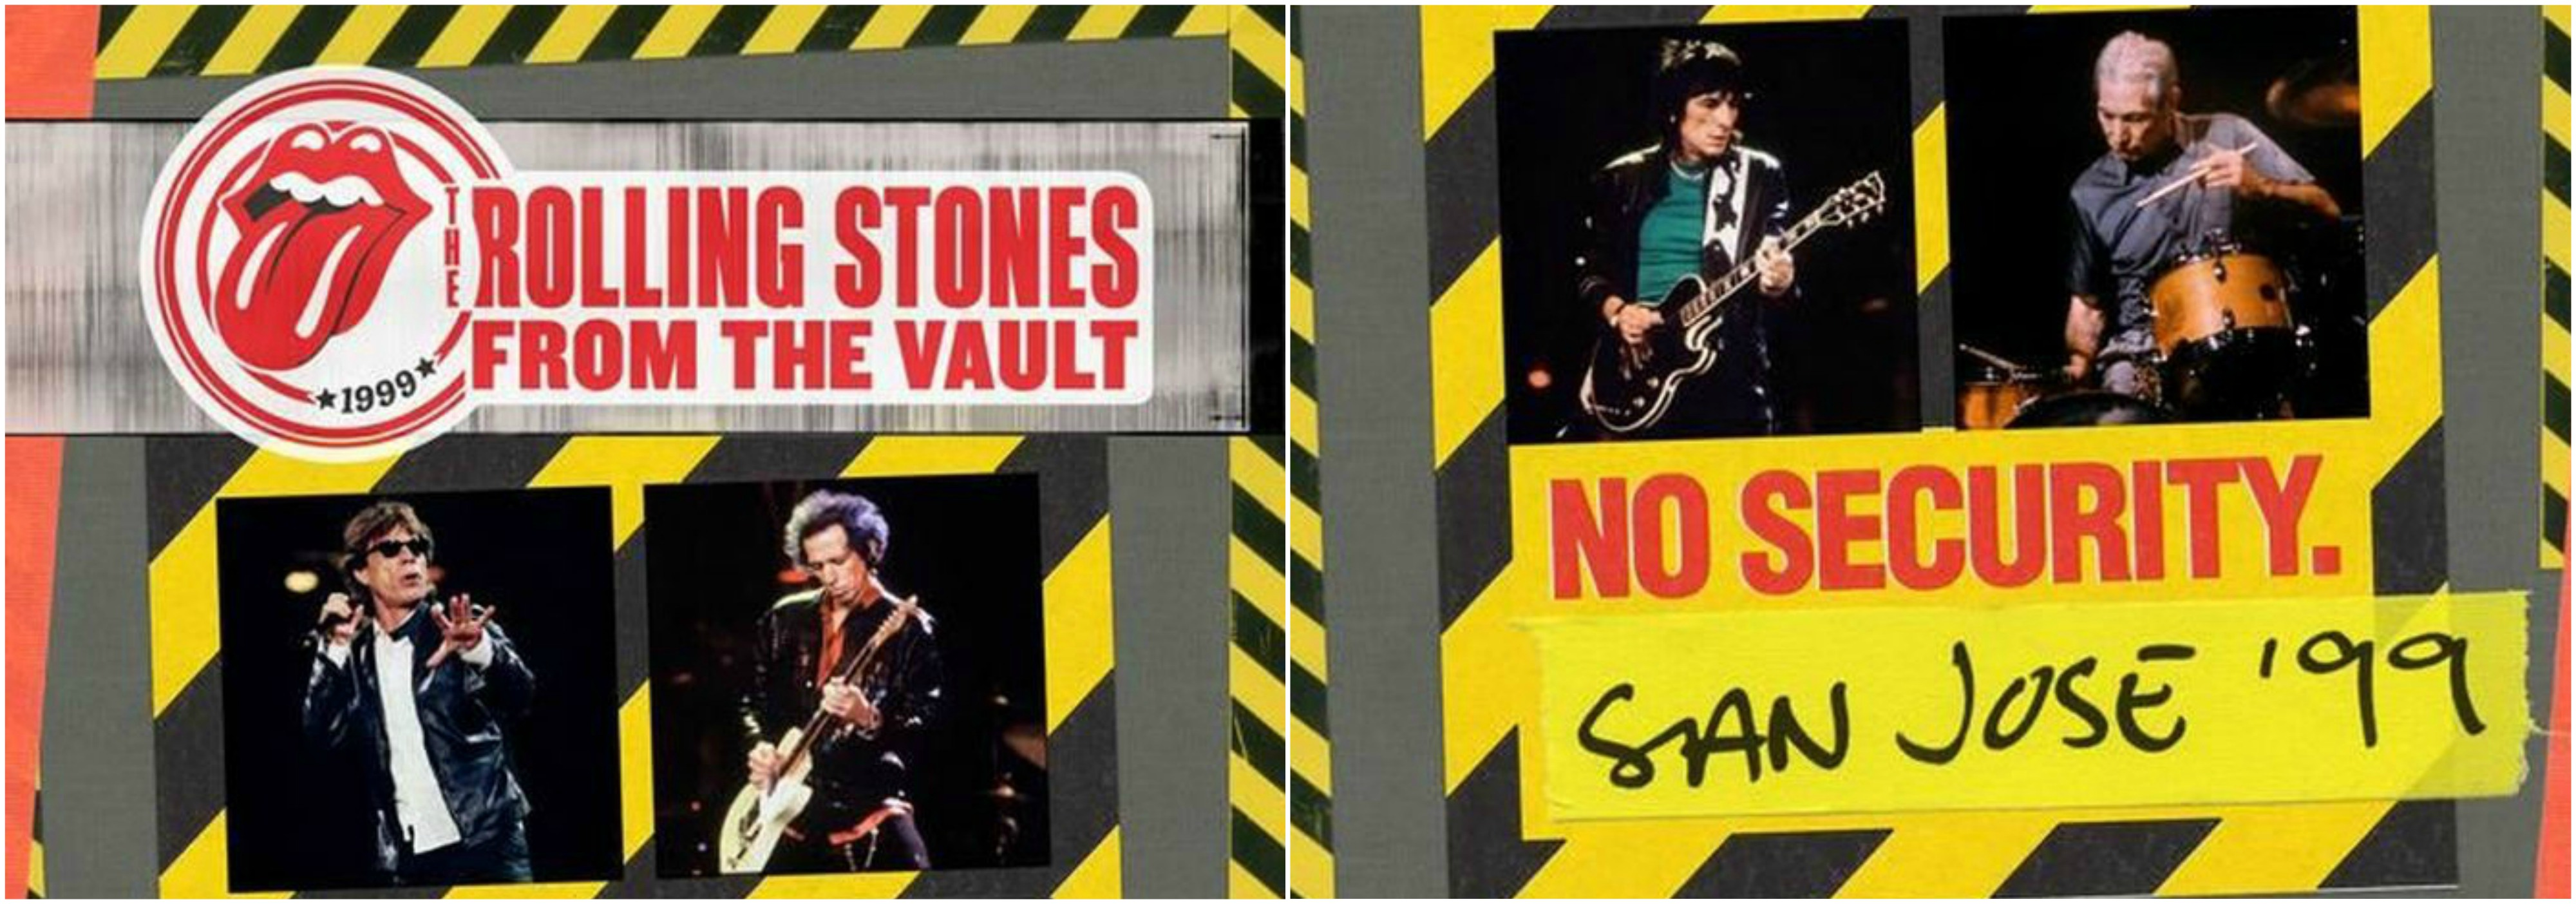 From The Vault: No Security – San Jose 1999, in arrivo uno storico show dei Rolling Stones